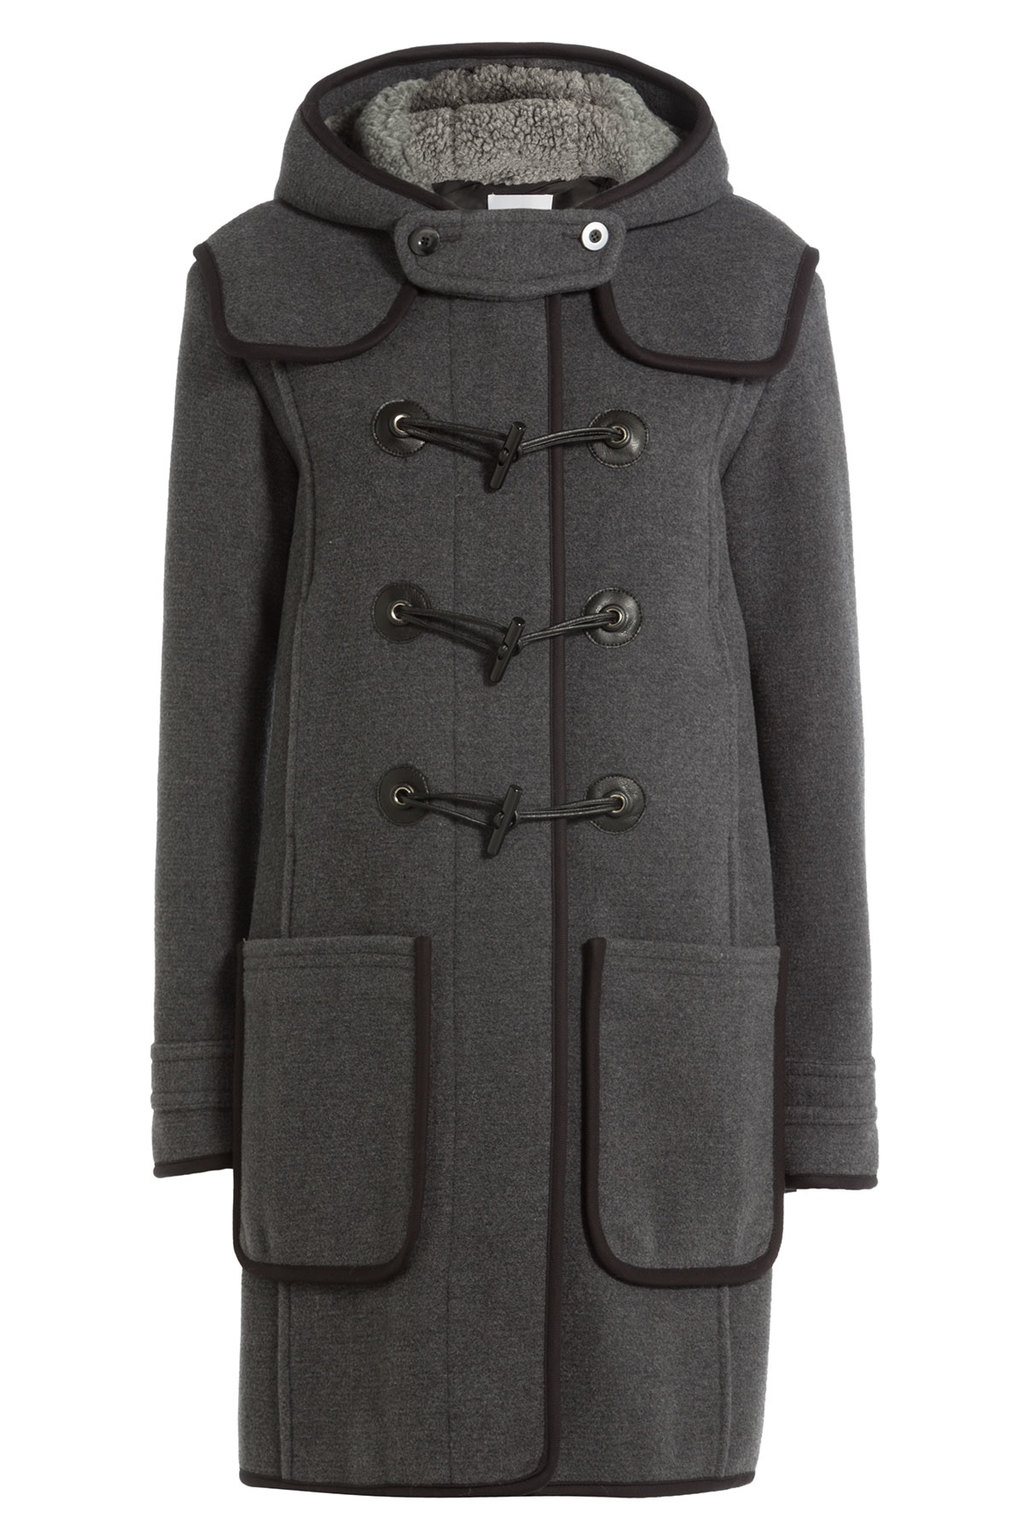 Wool Duffle Coat Grey - pattern: plain; collar: funnel; fit: loose; back detail: hood; length: on the knee; style: duffle coat; predominant colour: charcoal; occasions: casual, creative work; fibres: wool - 100%; sleeve length: long sleeve; sleeve style: standard; collar break: high; pattern type: fabric; texture group: woven bulky/heavy; hip detail: front pockets at hip; wardrobe: basic; season: a/w 2016